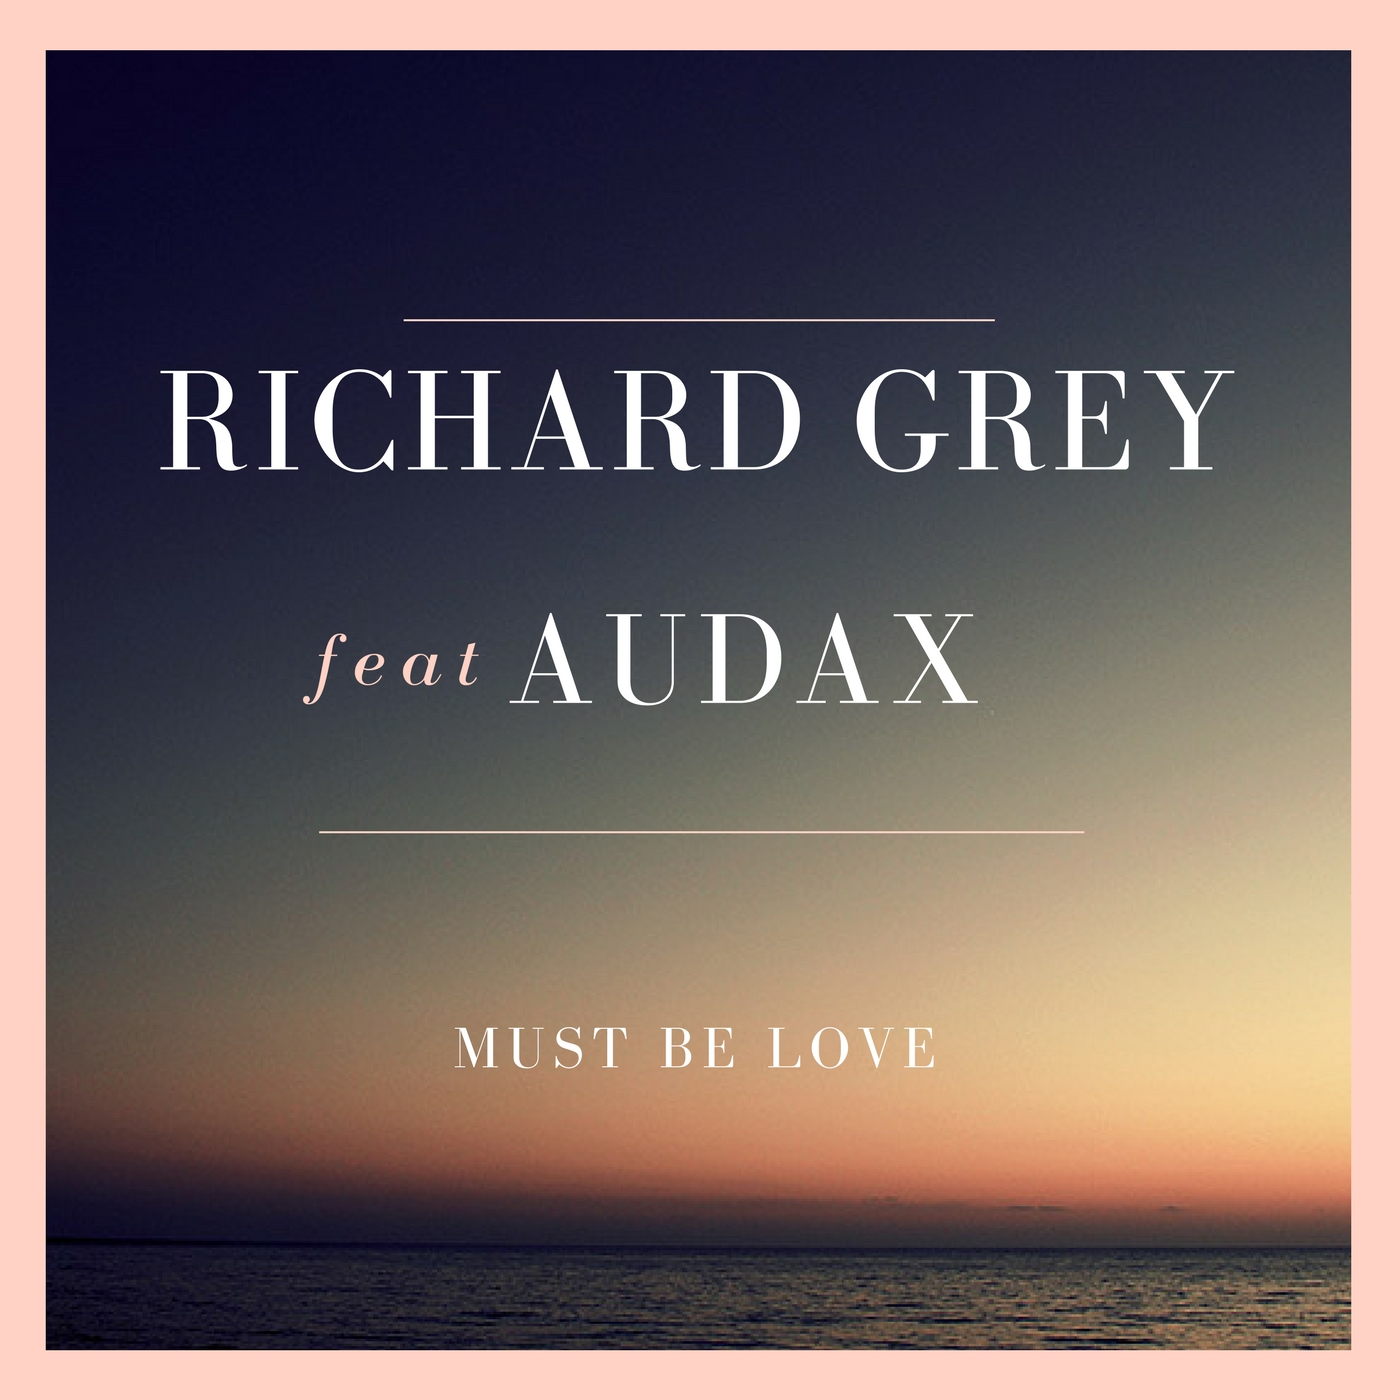 Richard Grey feat Audax - Must be Love